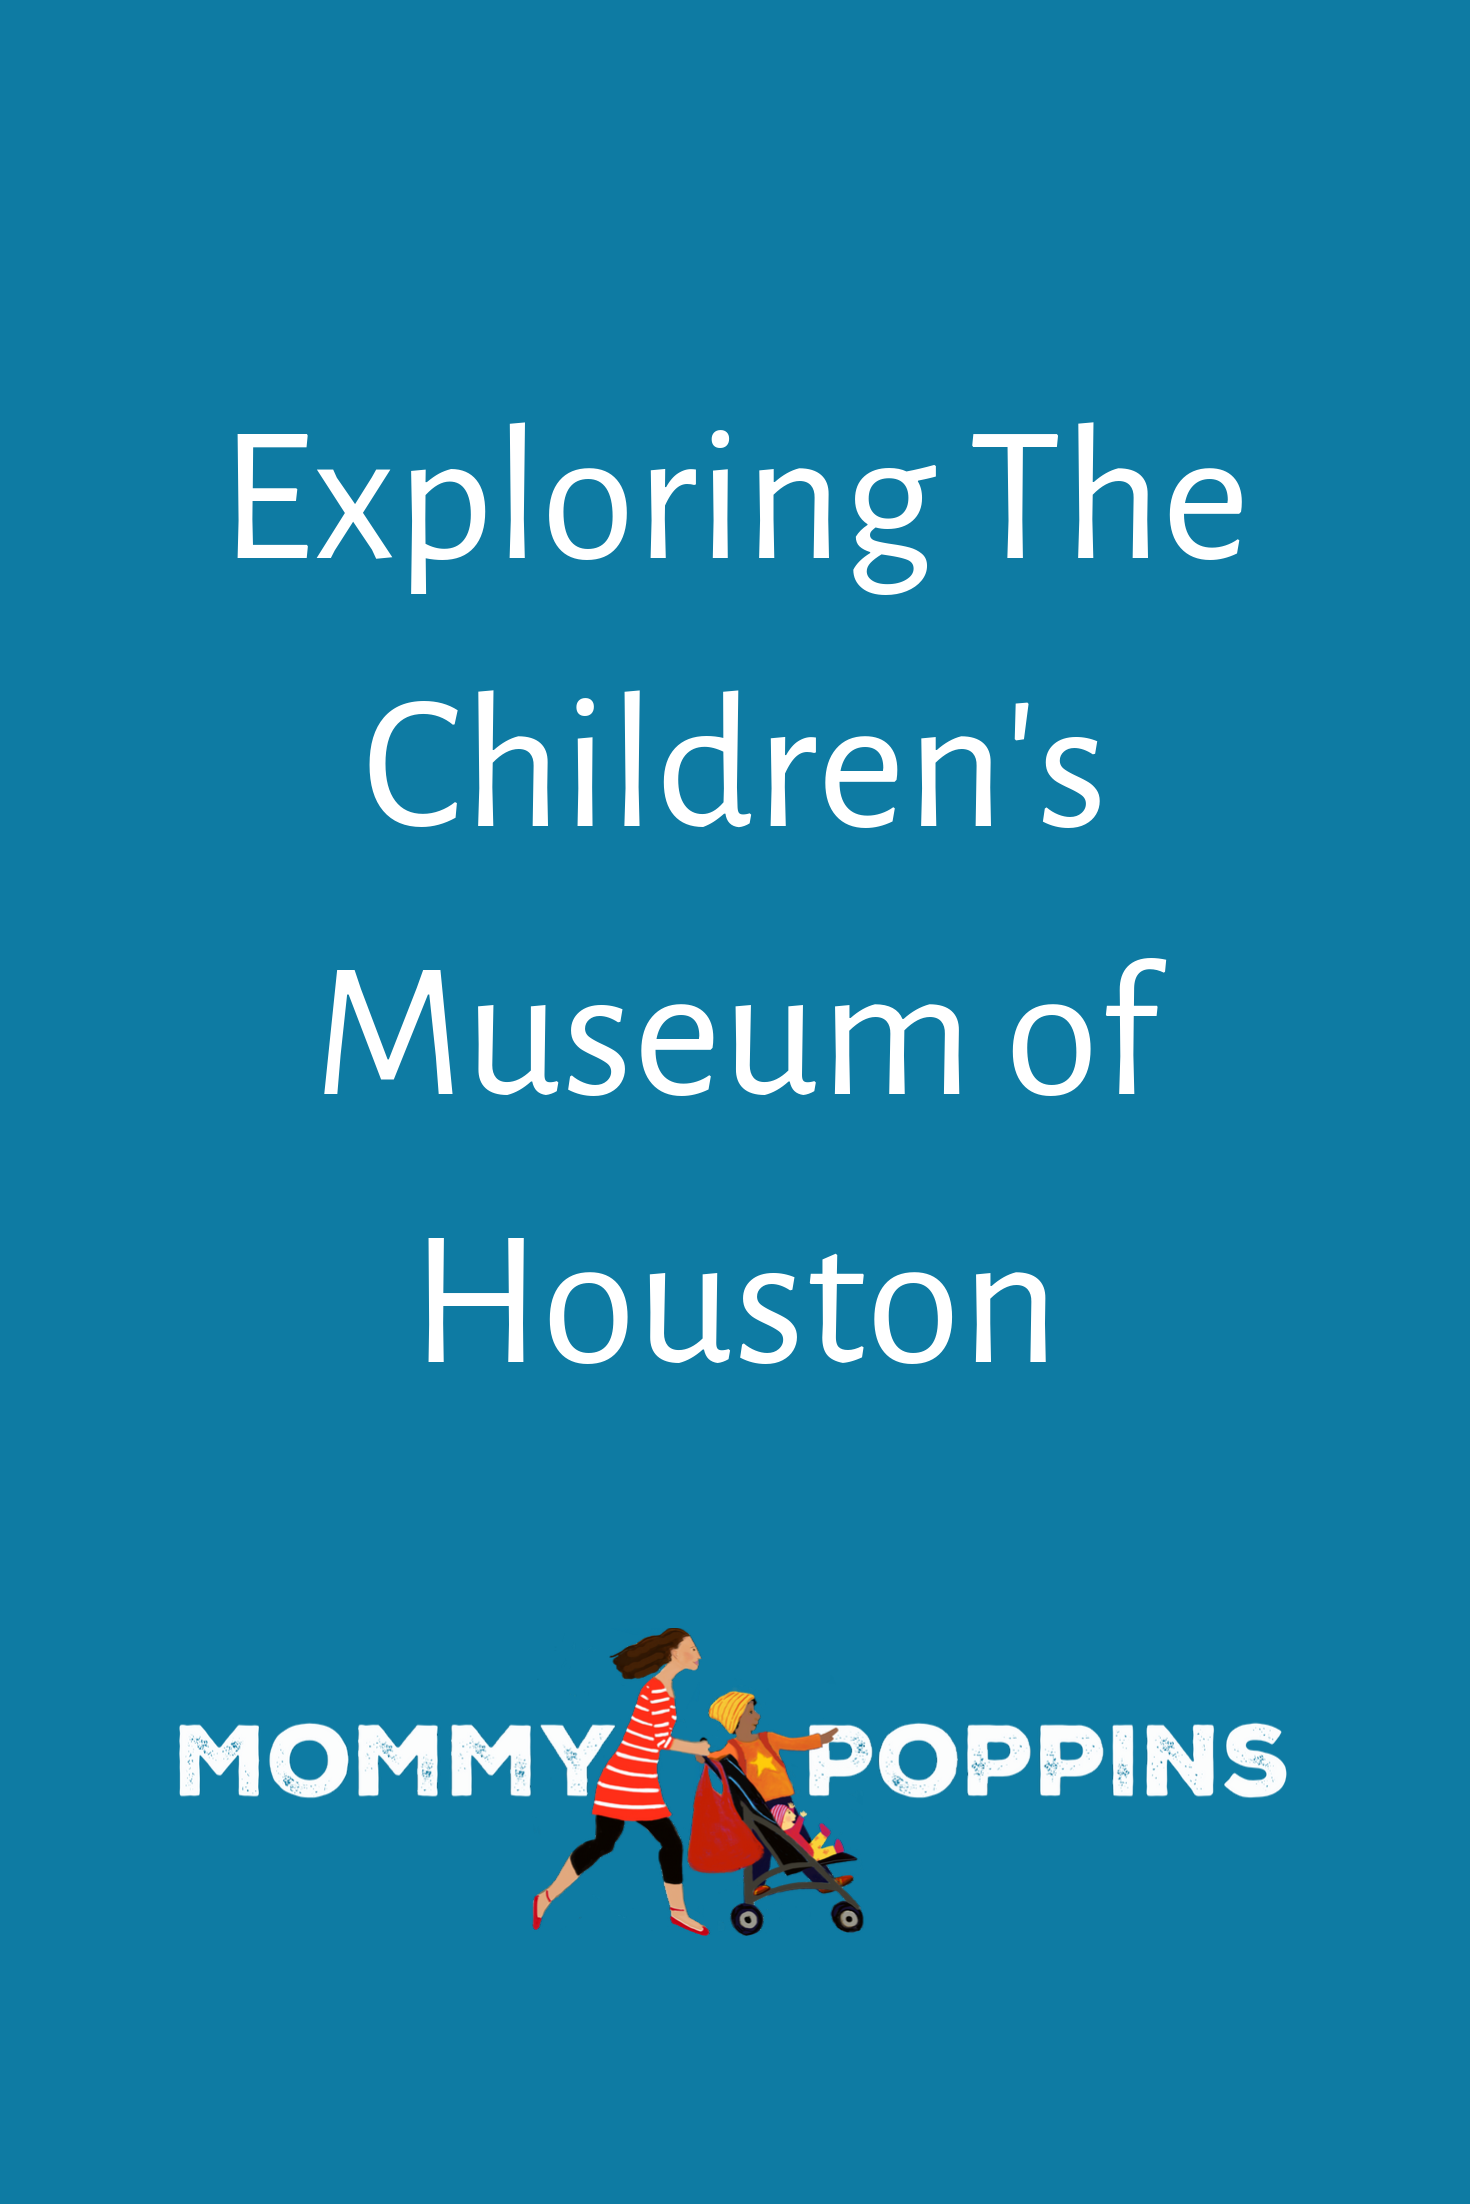 Exploring The Children's Museum of Houston Nyc with kids